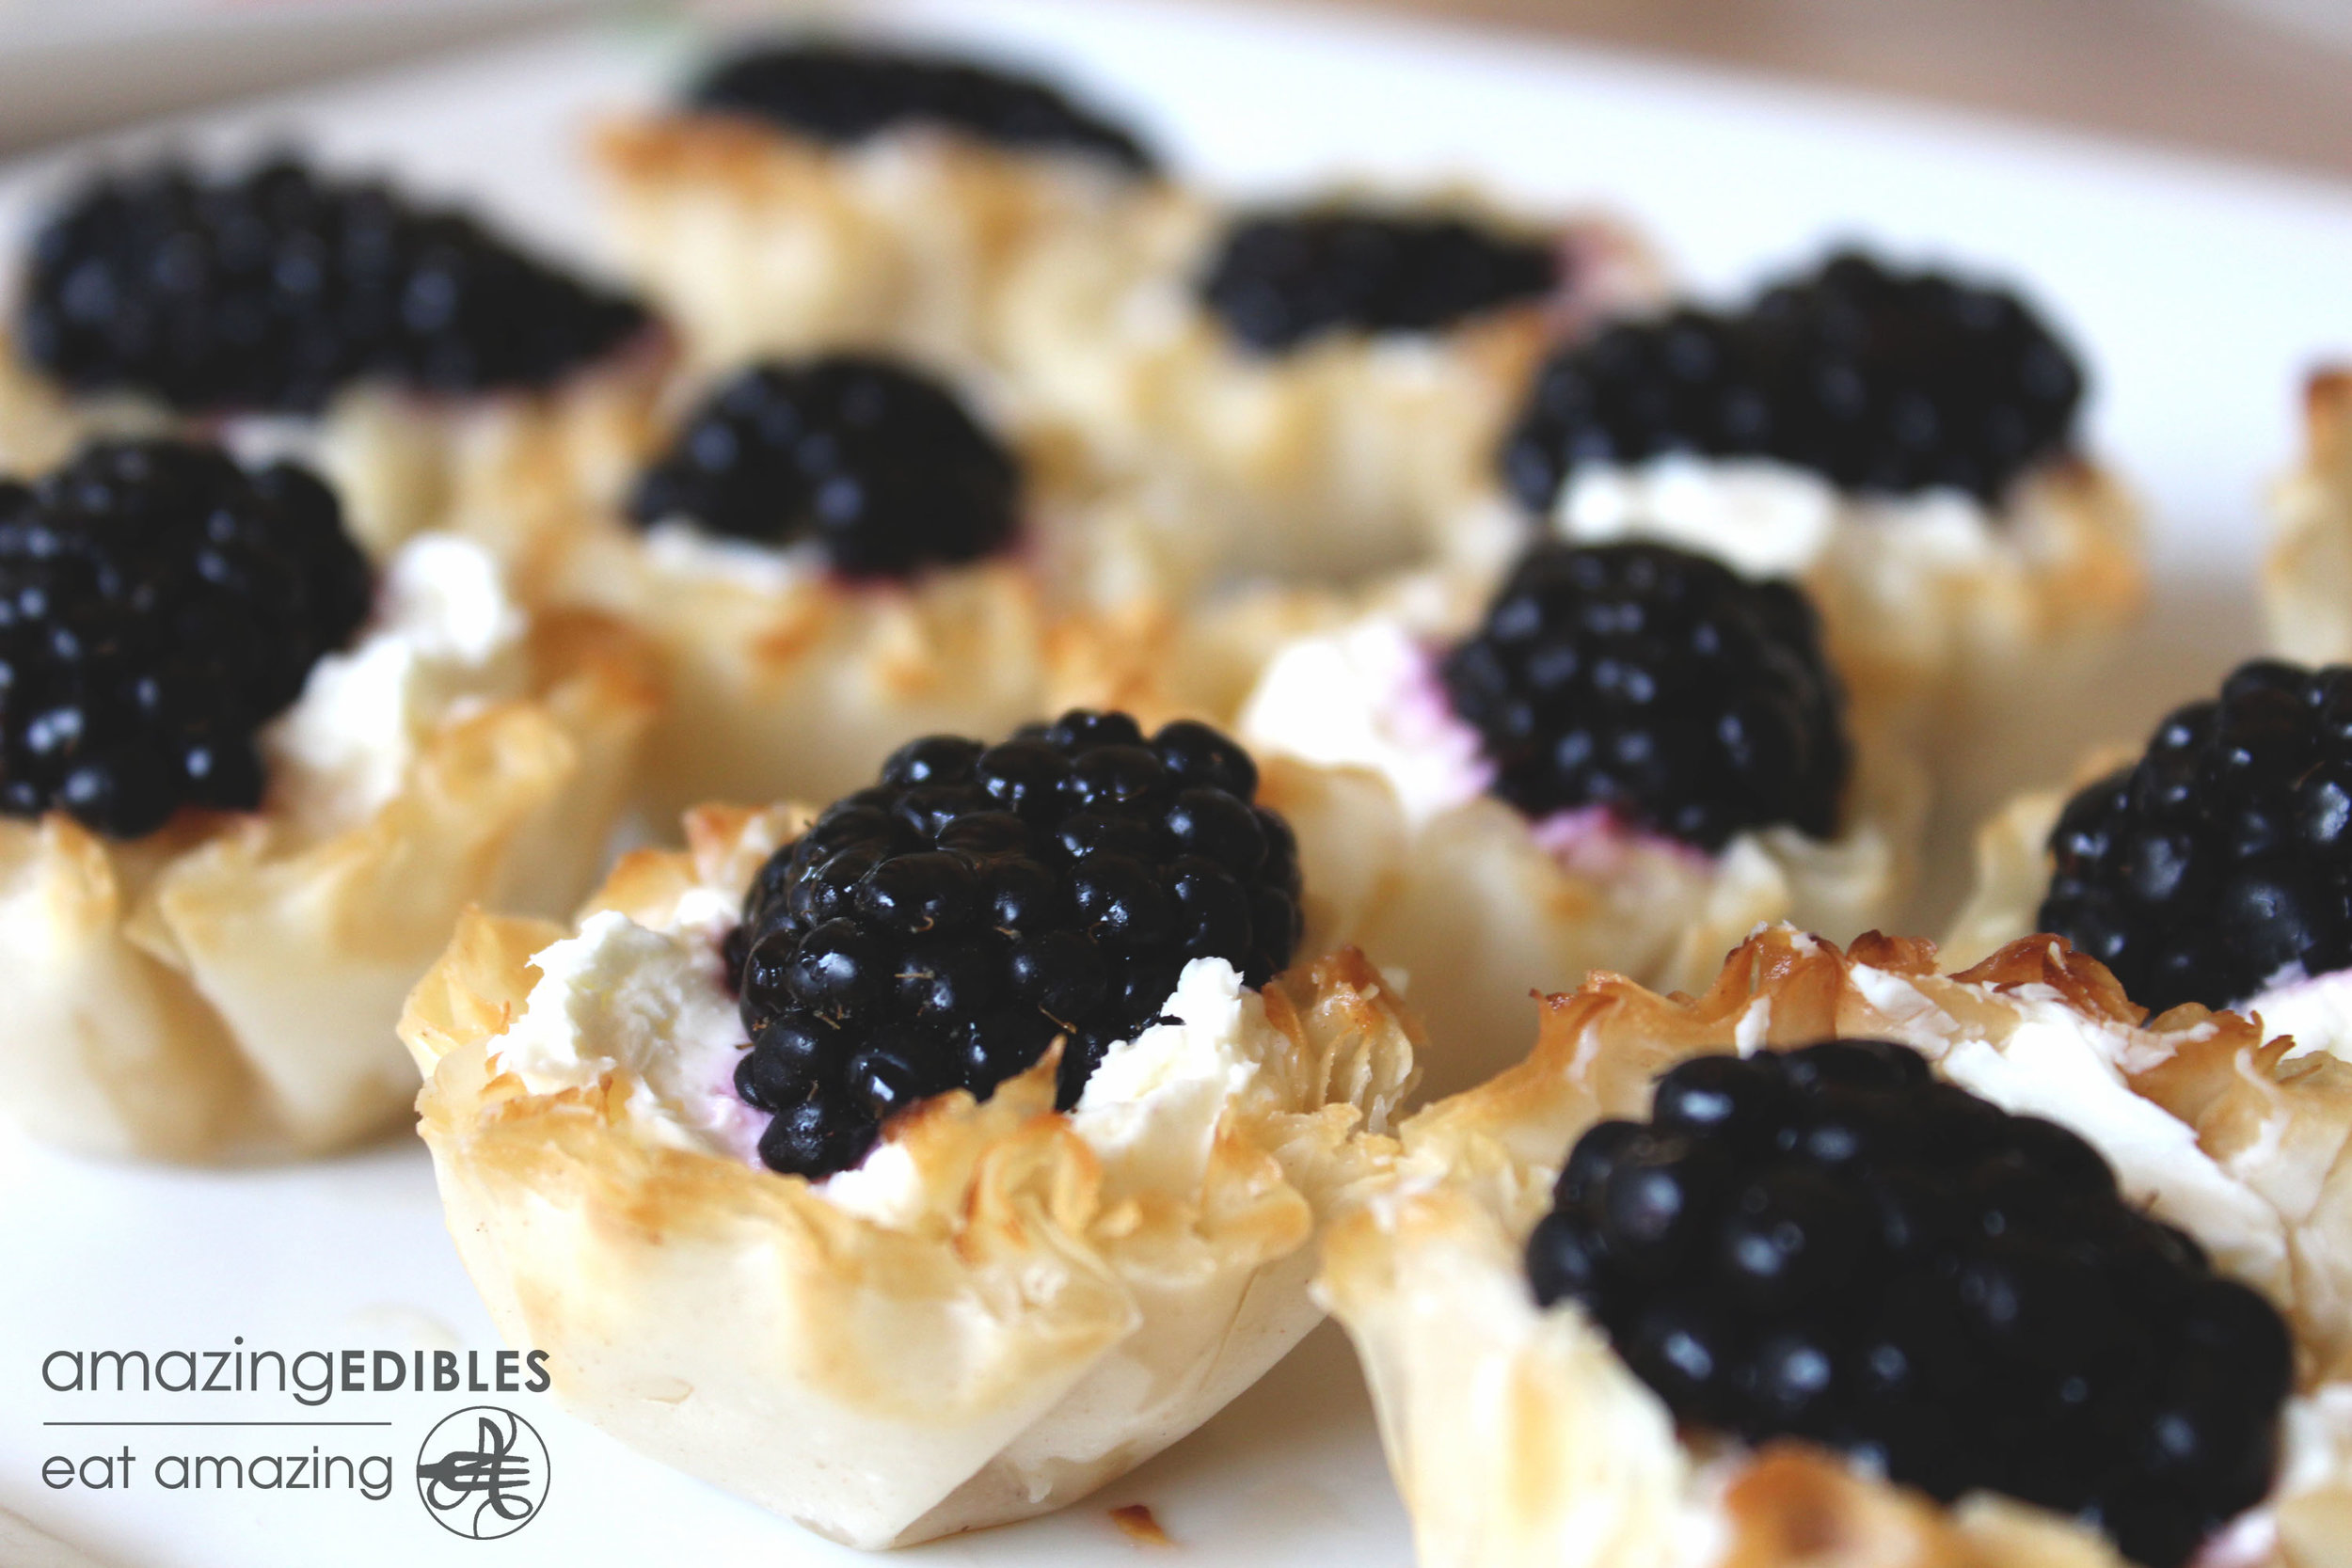 Goat Cheese & Black Berry Tartlet